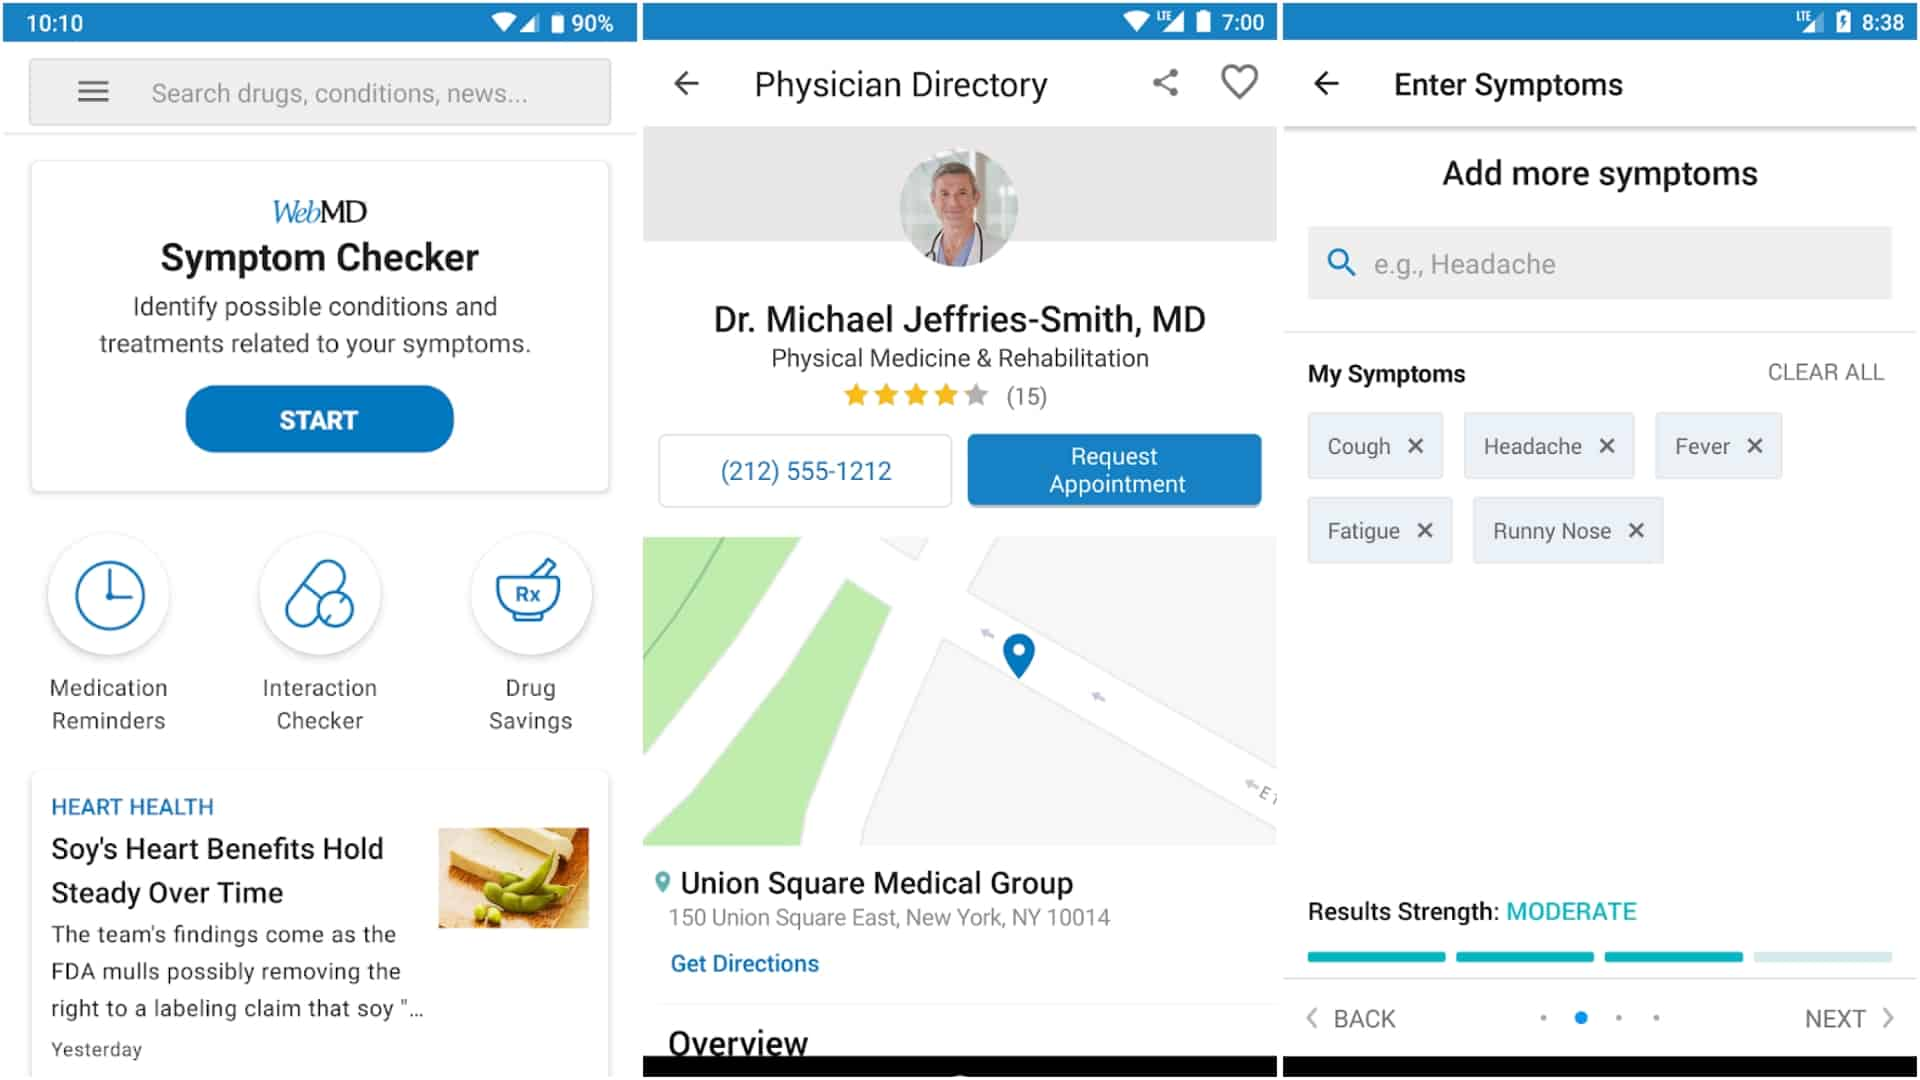 WebMD app image March 2020